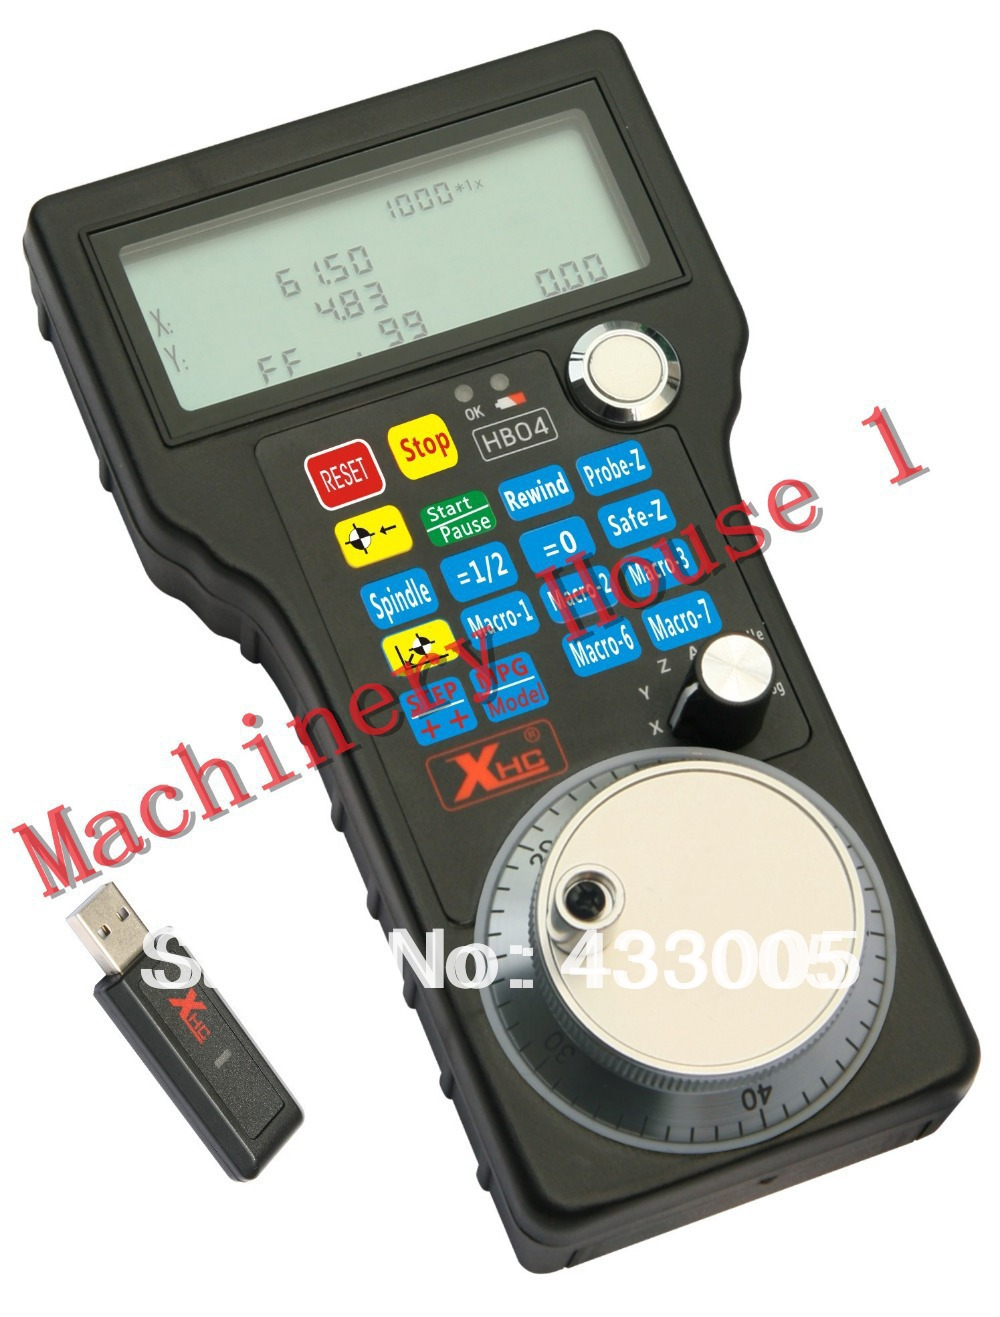 Mach3 2.4G 40M Control 98DB Wireless Mach3 MPG Pendant Handlewheel For Mach 3, 4 Axis CNC CNC Router cnc router engraving on granite mach 3 control system